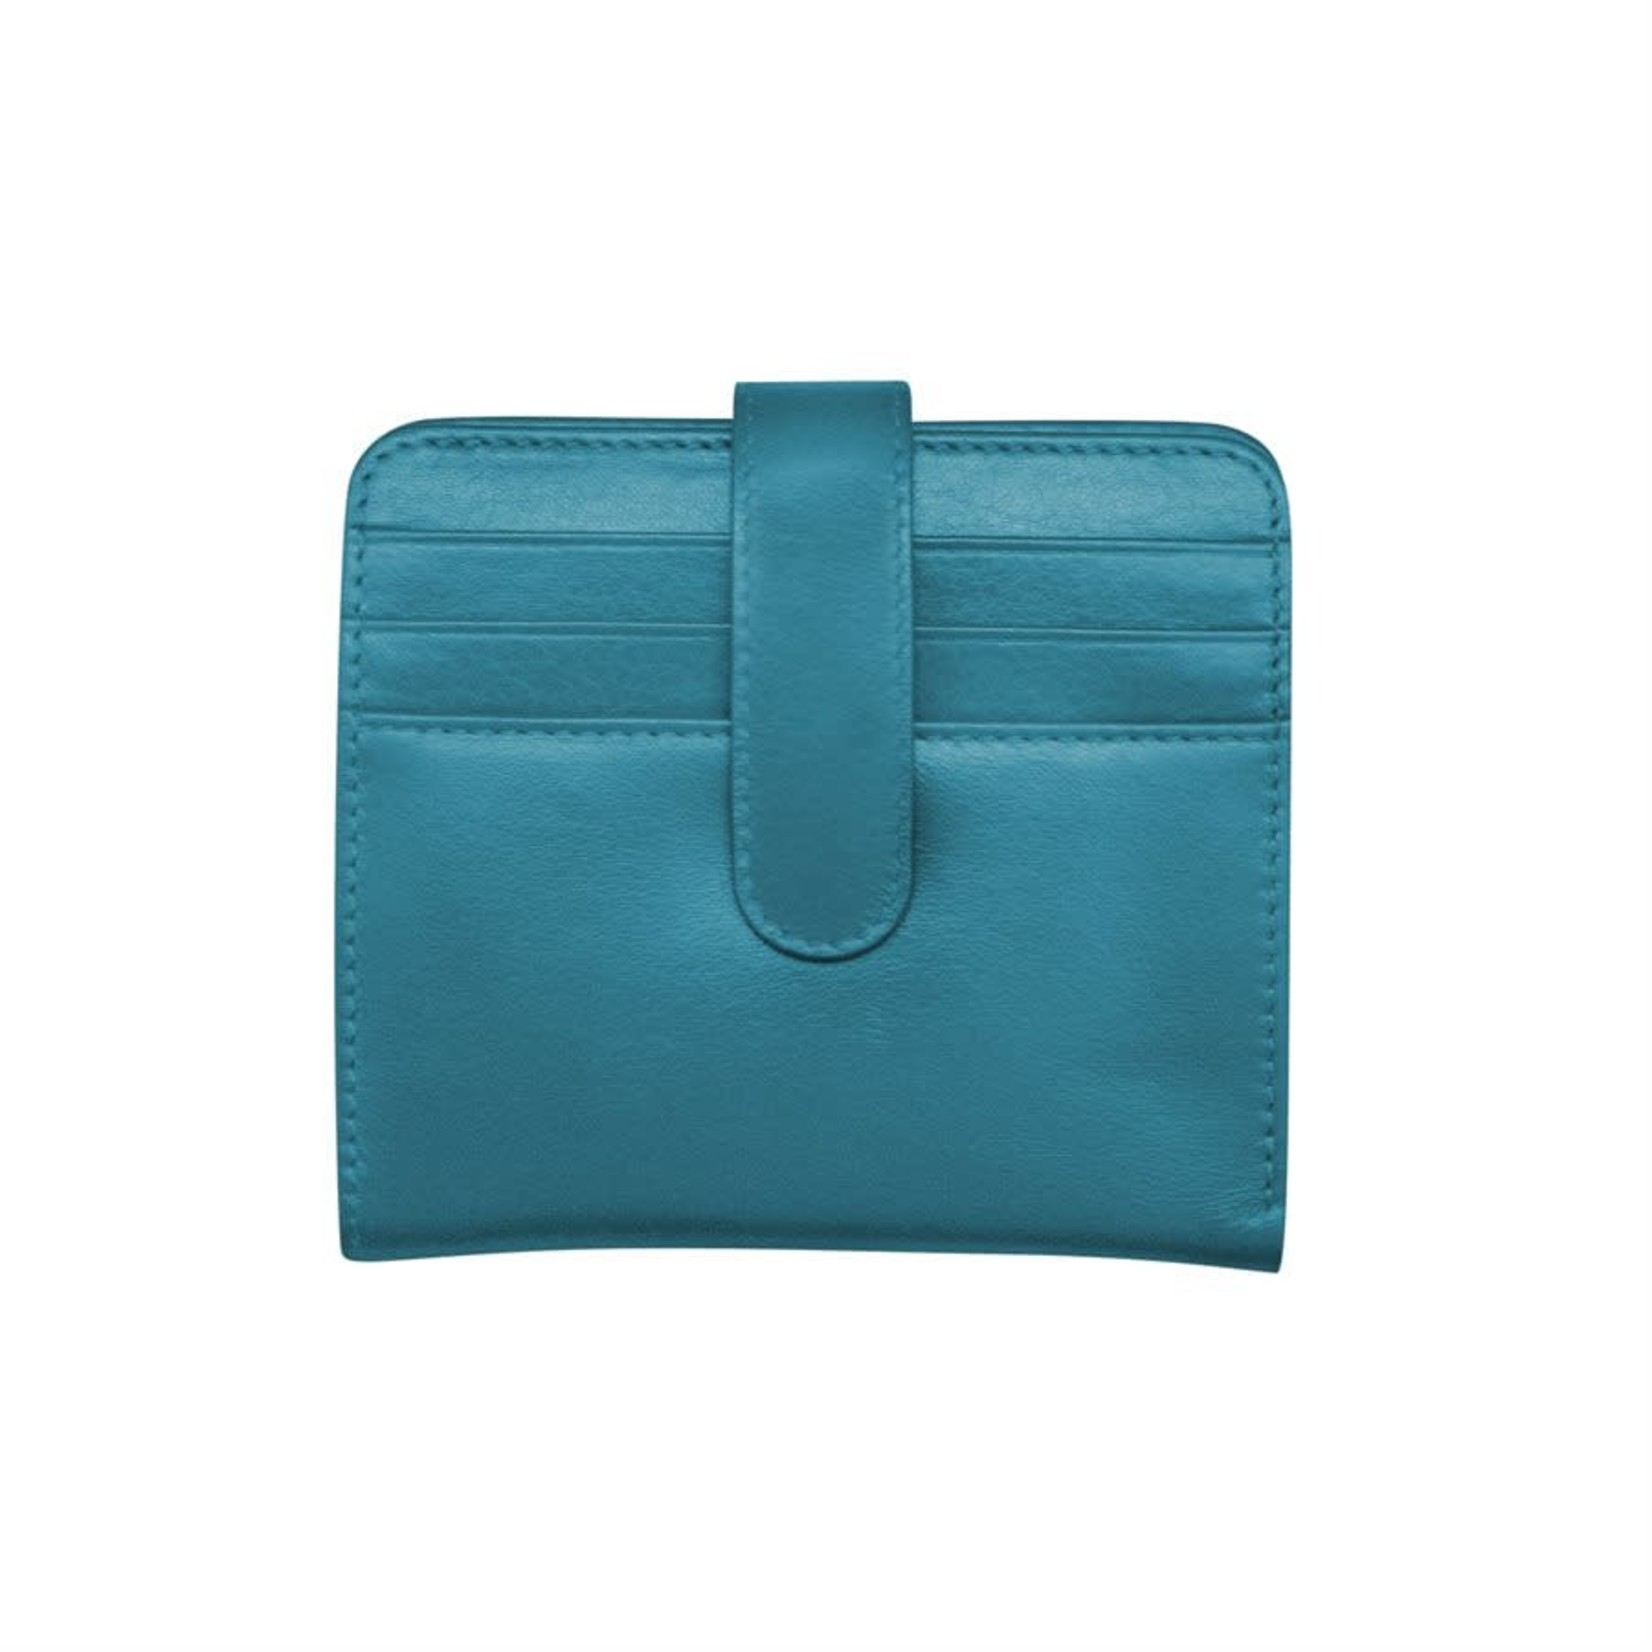 Leather Handbags and Accessories 7301 Jeans Blue - RFID Small Wallet